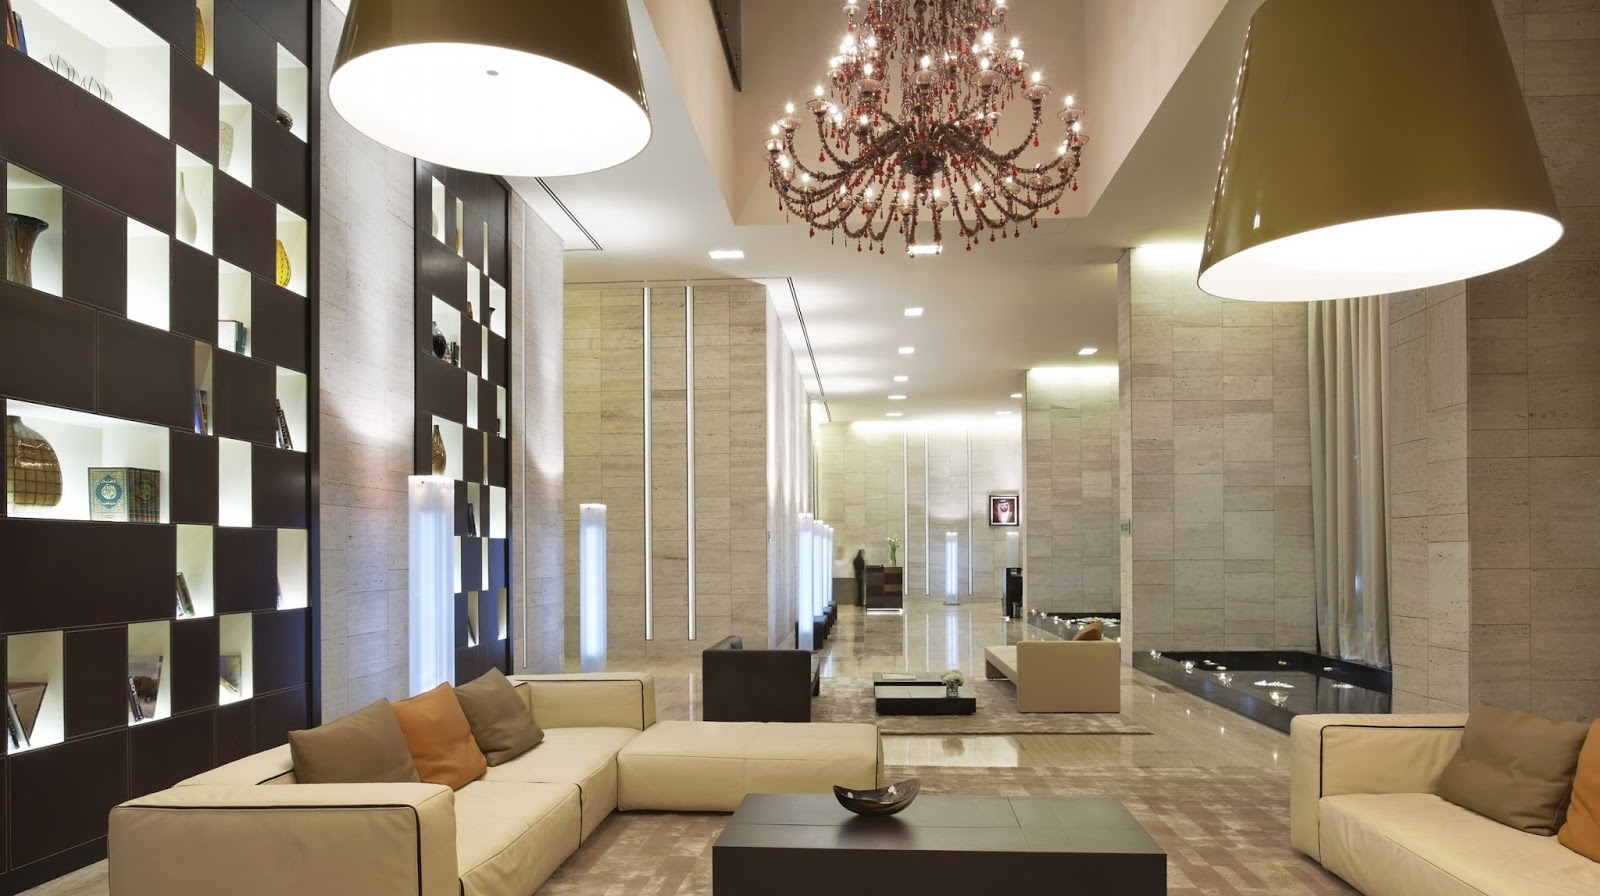 Best interior design companies and interior designers in dubai Design house international